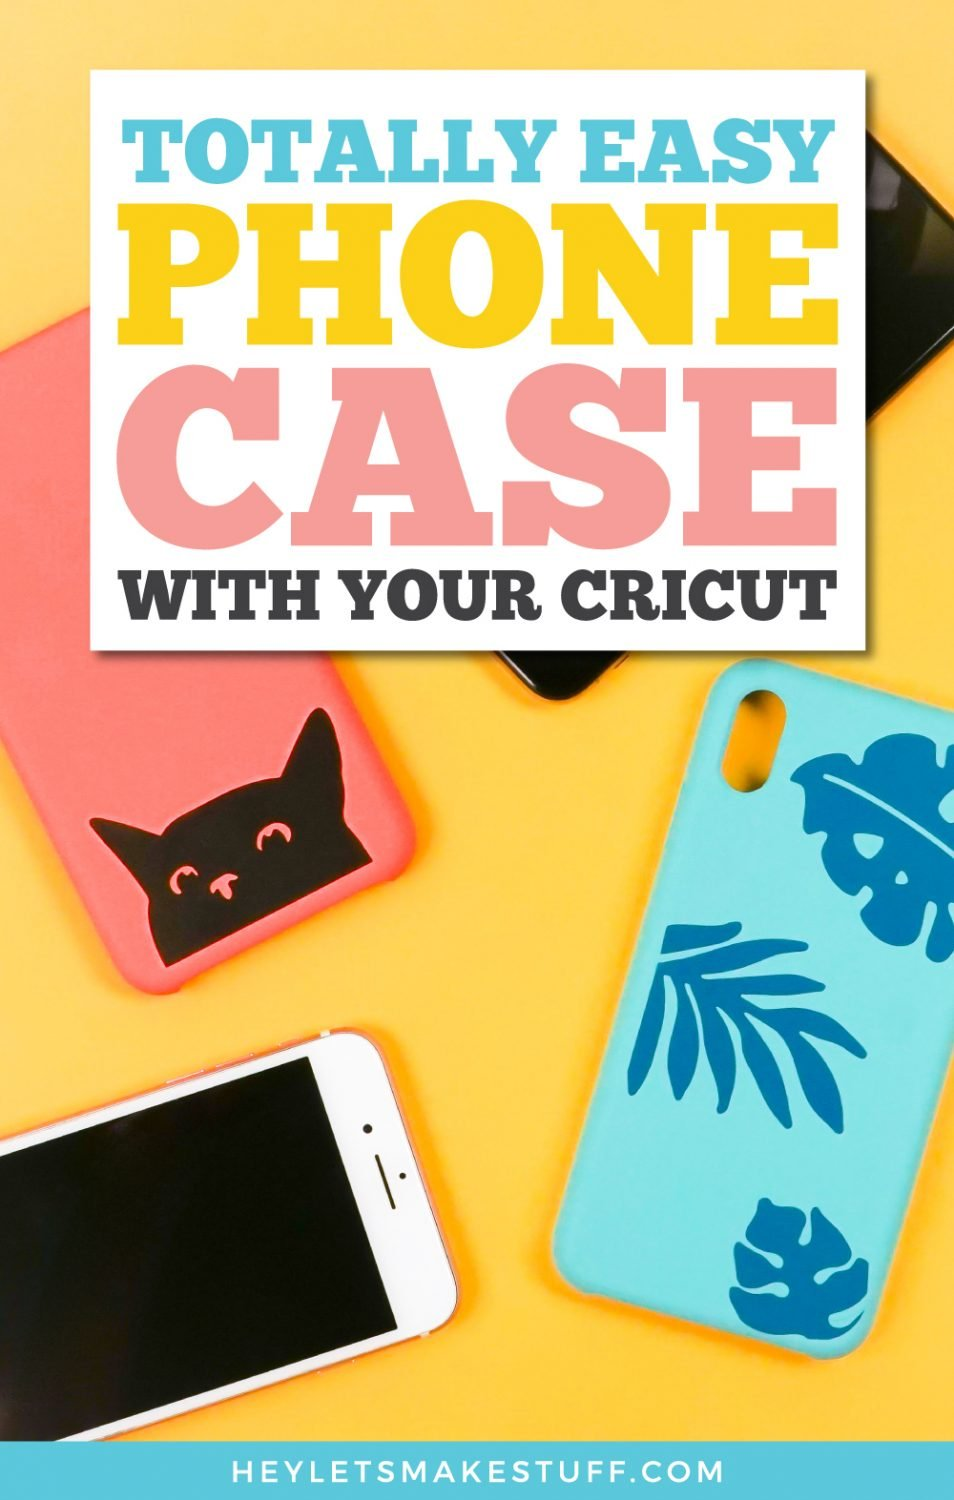 How to Personalize a Phone Case with Your Cricut pin image